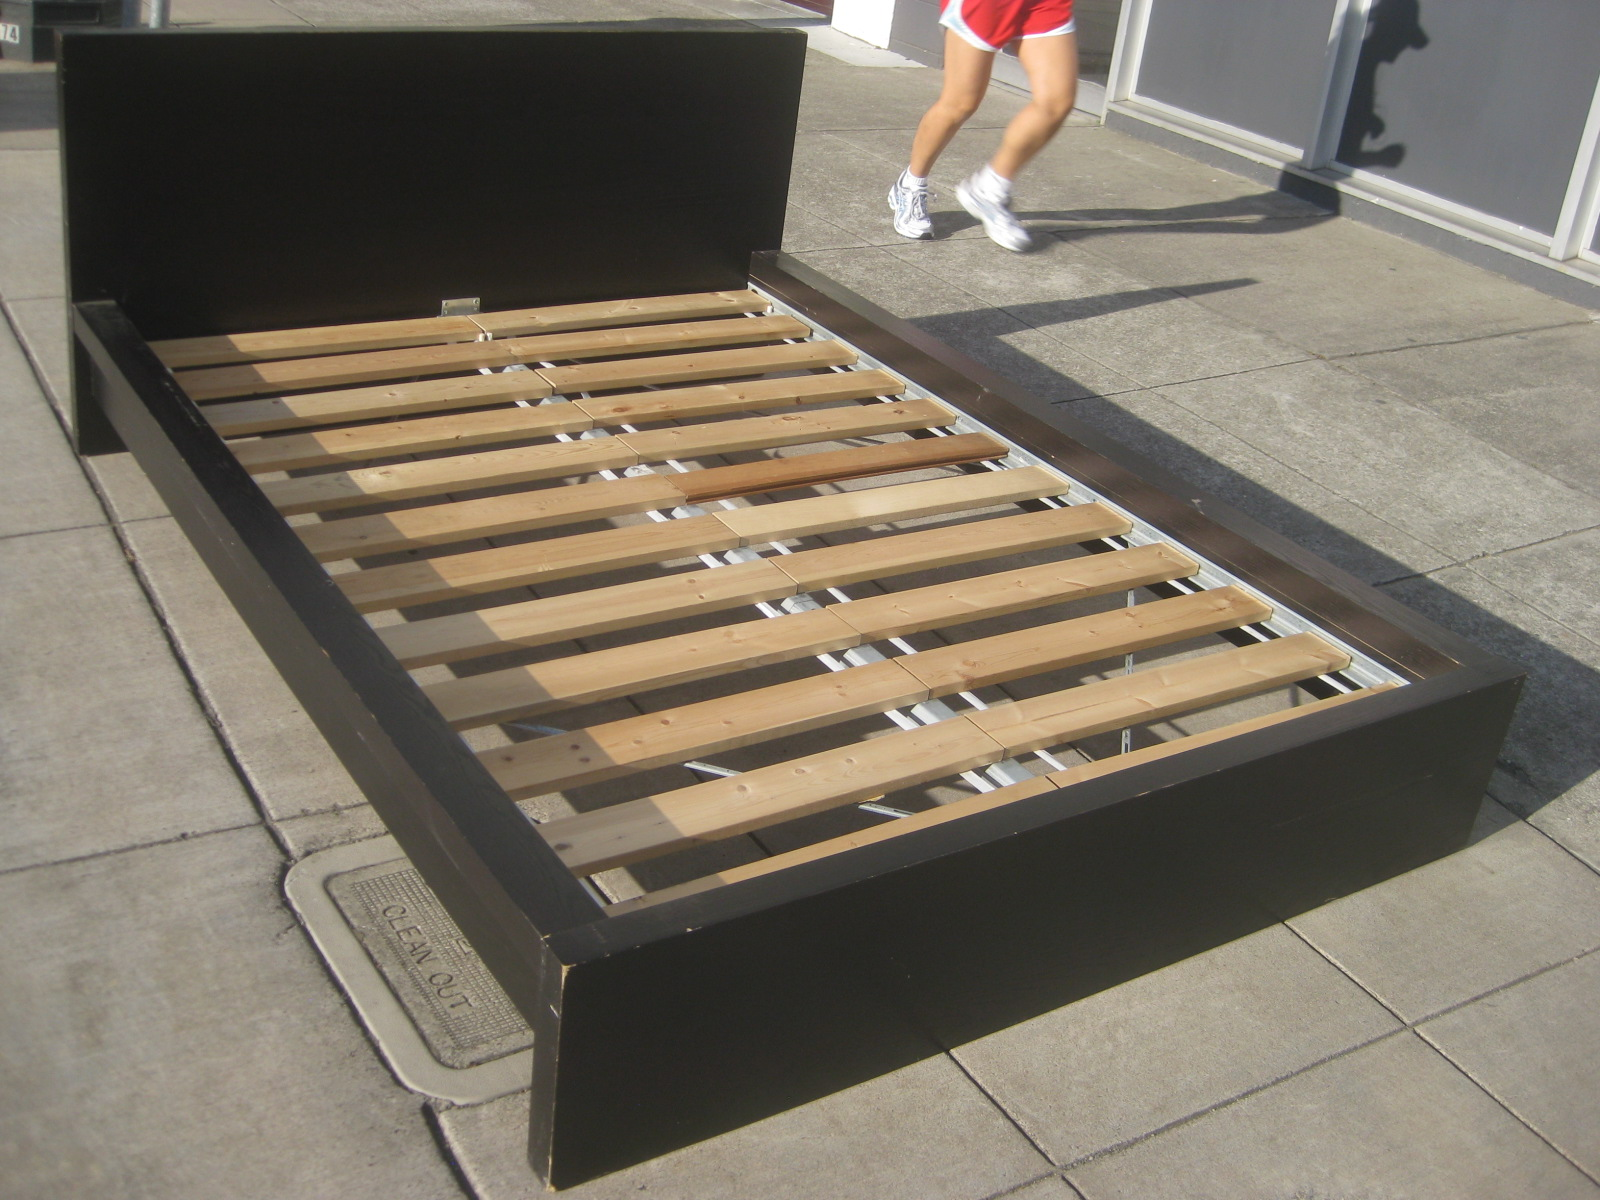 UHURU FURNITURE & COLLECTIBLES: SOLD Full Ikea Bed Frame - $75